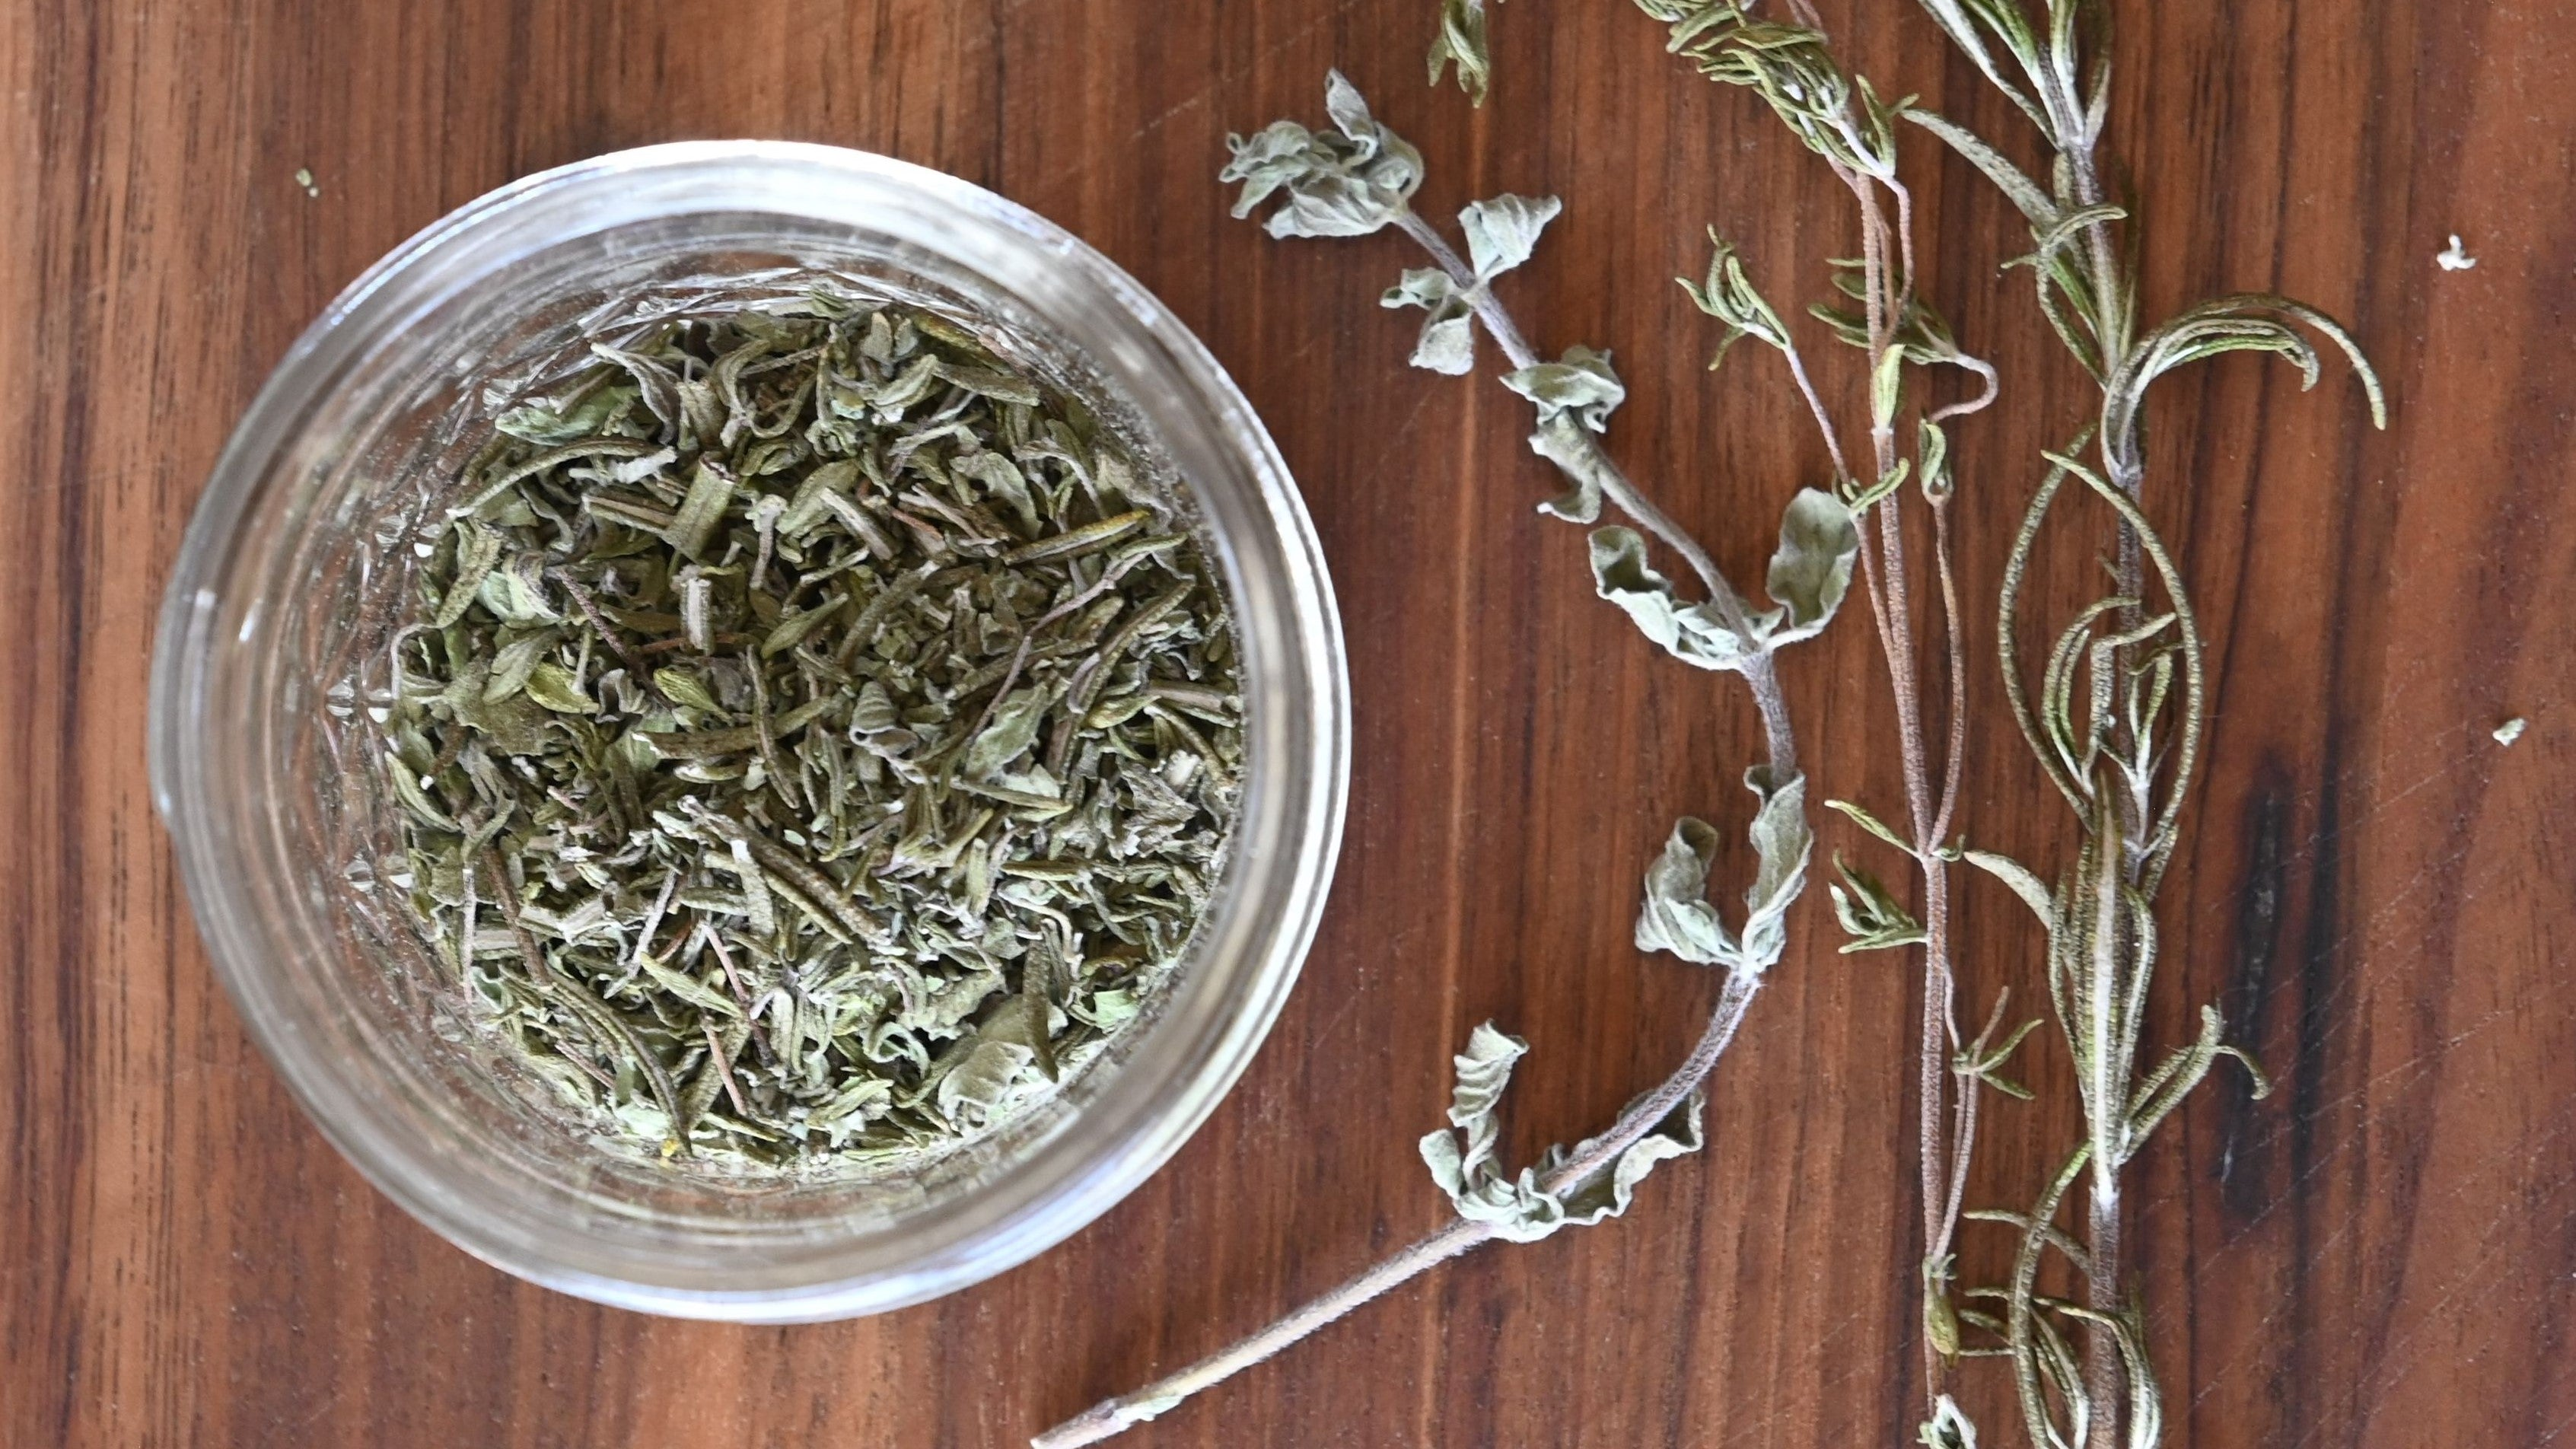 Jar of Italian herb blend next to dehydrated oregano, rosemary, and thyme